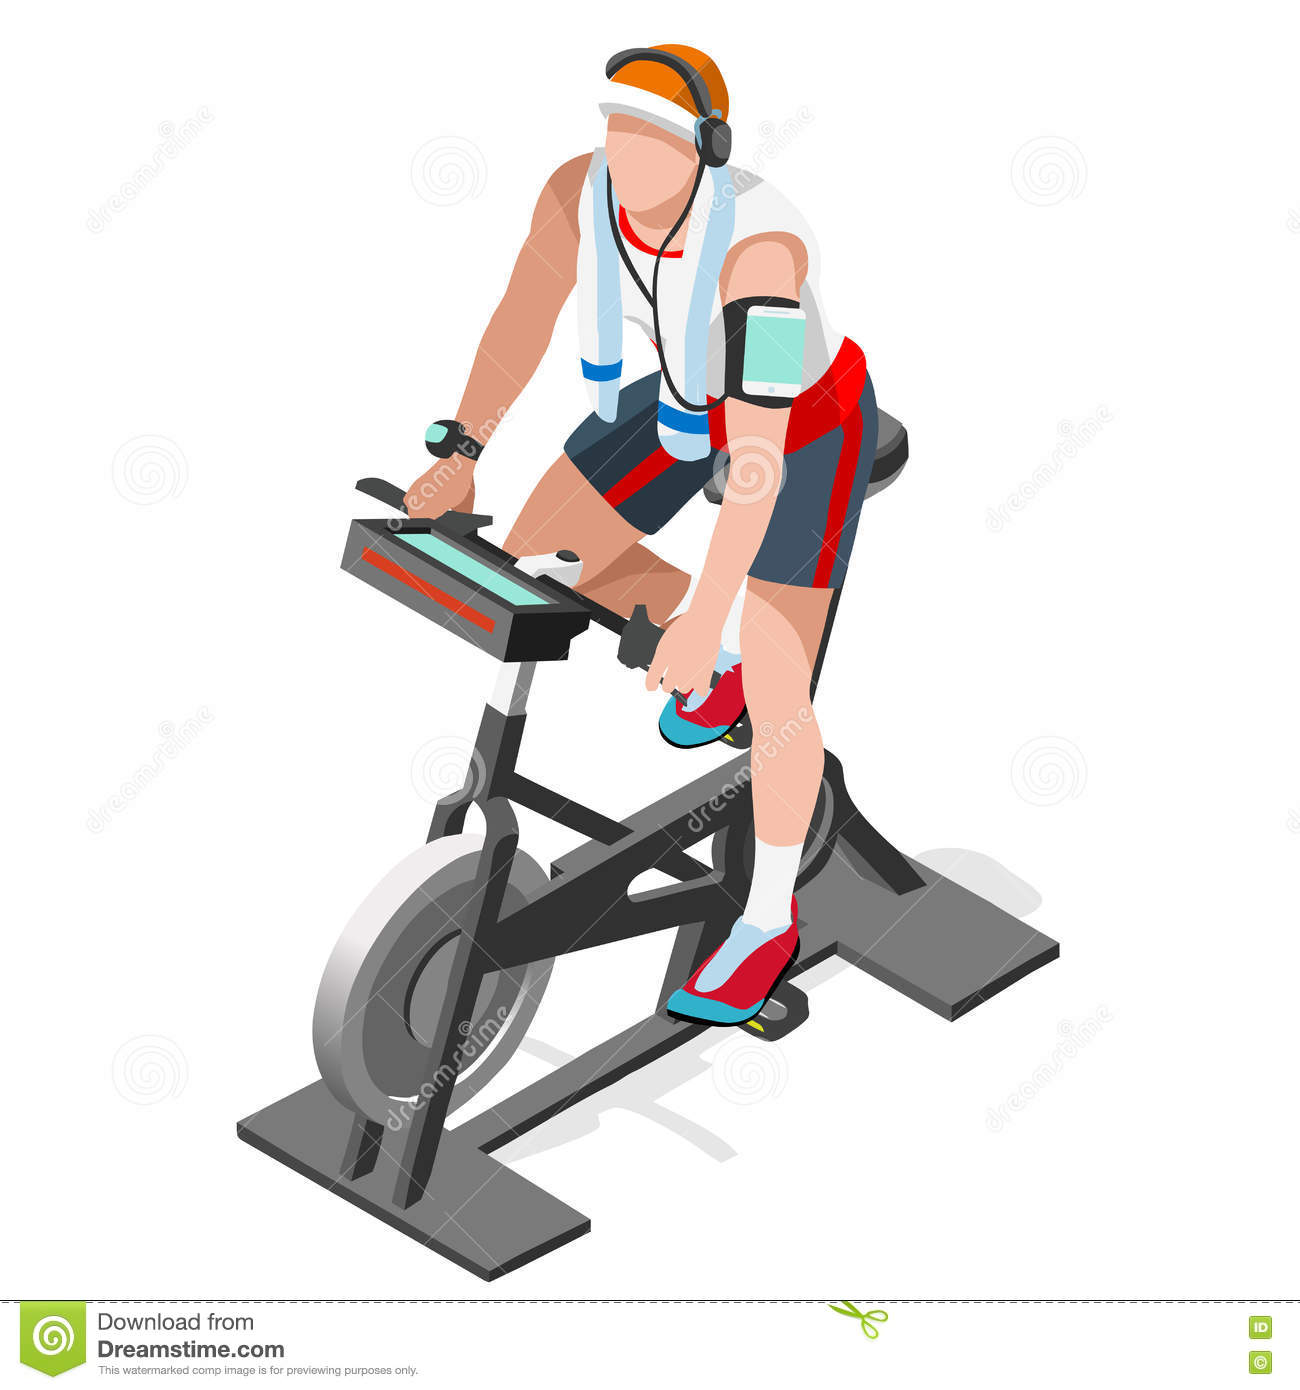 Man in spinning stock. Cycle clipart cycling class graphic stock